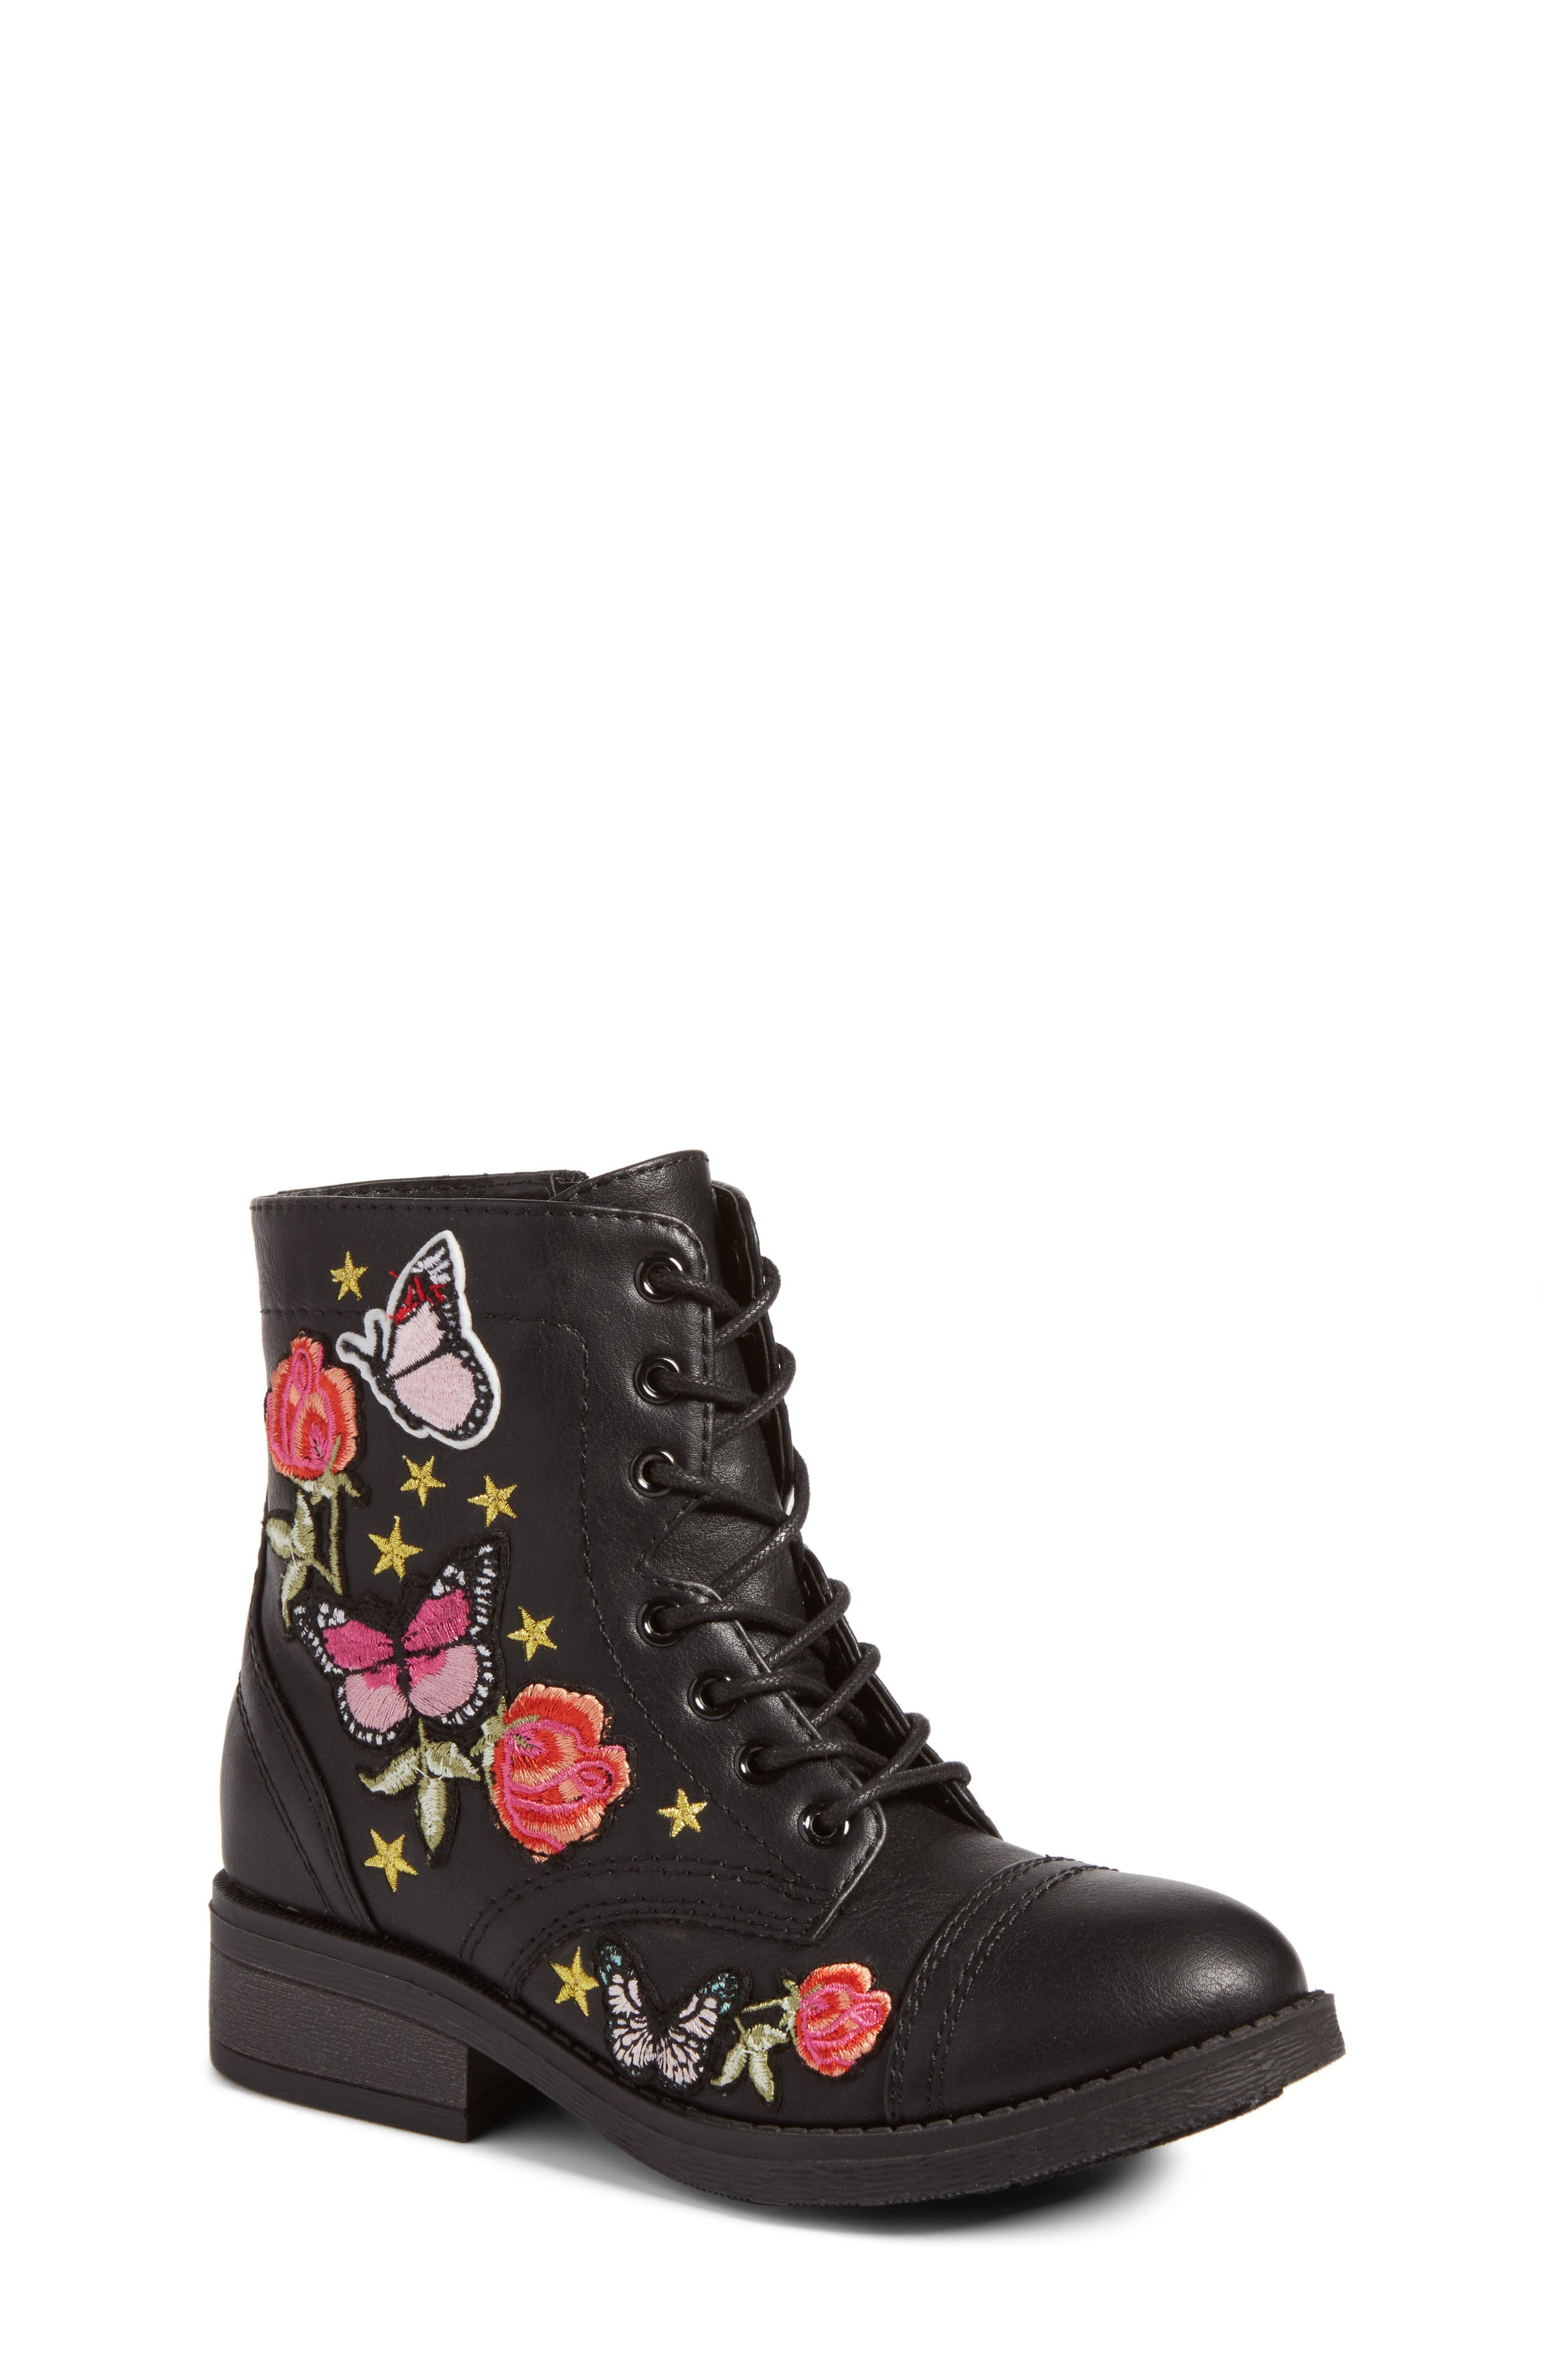 Roaring Embroidered Combat Boot,                         Main,                         color, 001